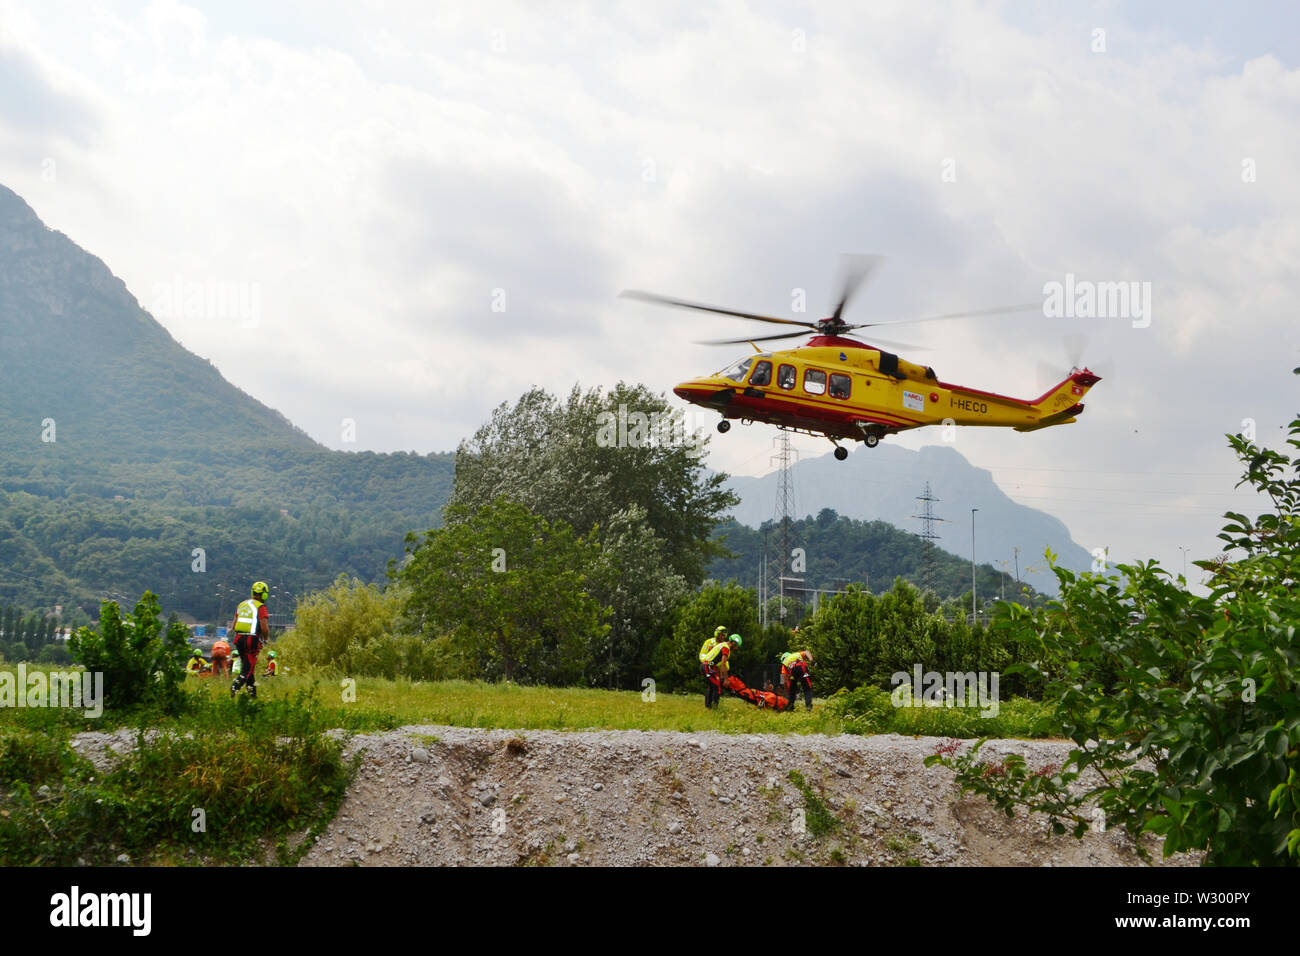 Lecco/Italy - July 10, 2019: Members of the National Alpine rescue team of Lecco are exercising in rescue with the help of helicopter service. Stock Photo